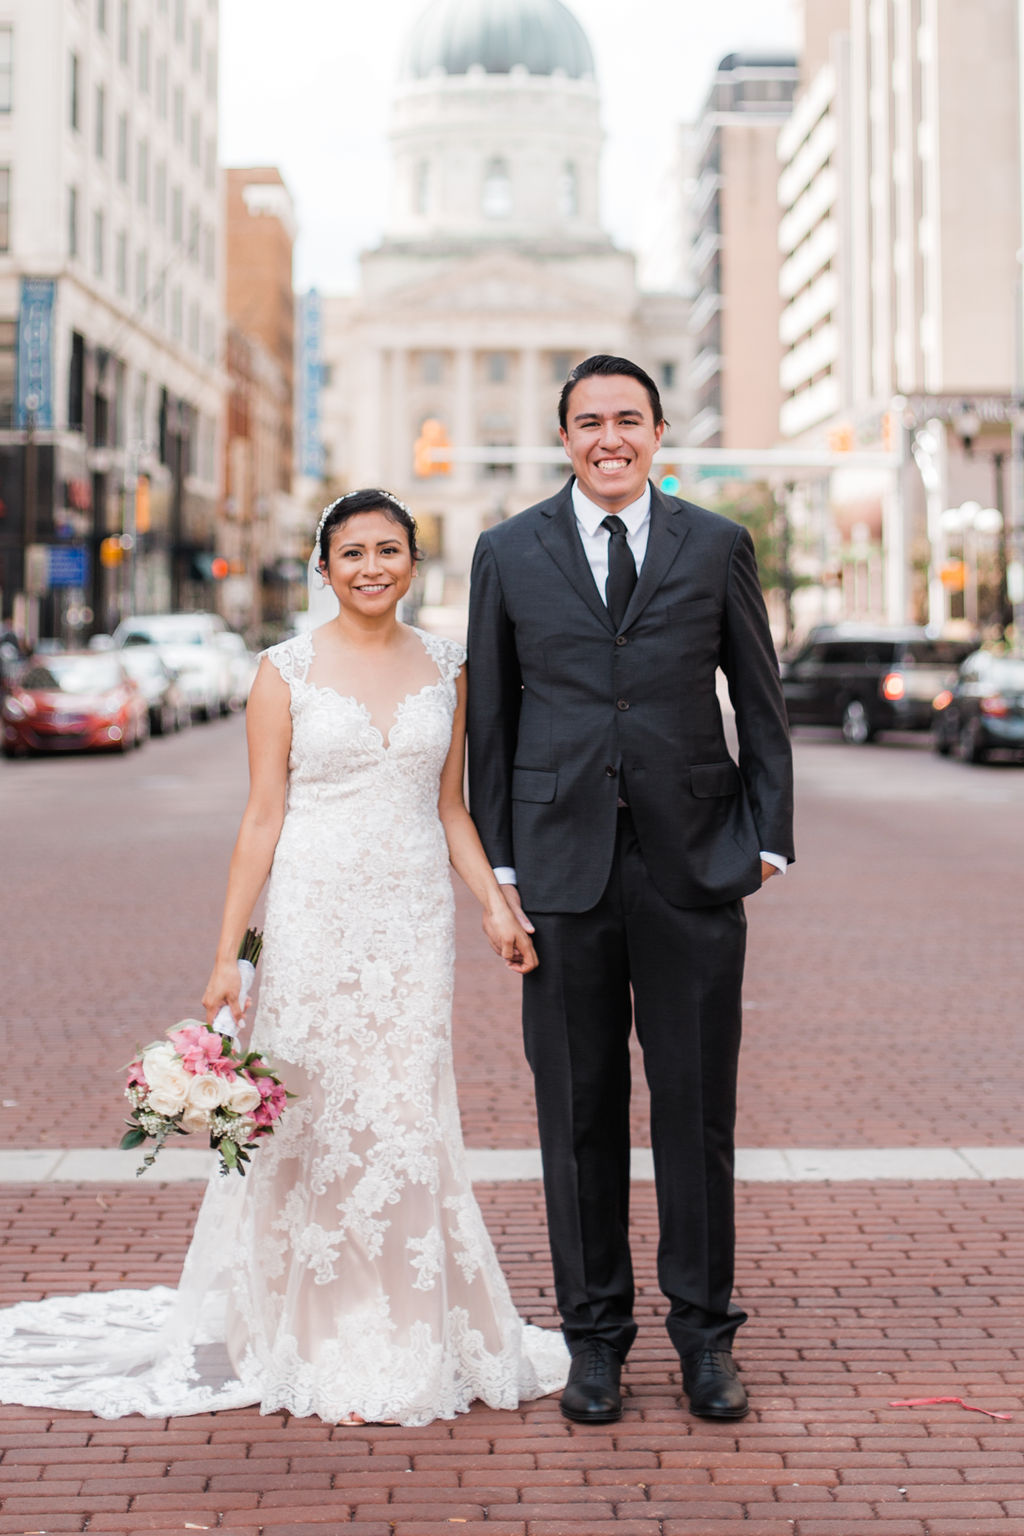 Indianapolis-Indiana-Wedding-Bride-Groom.jpg